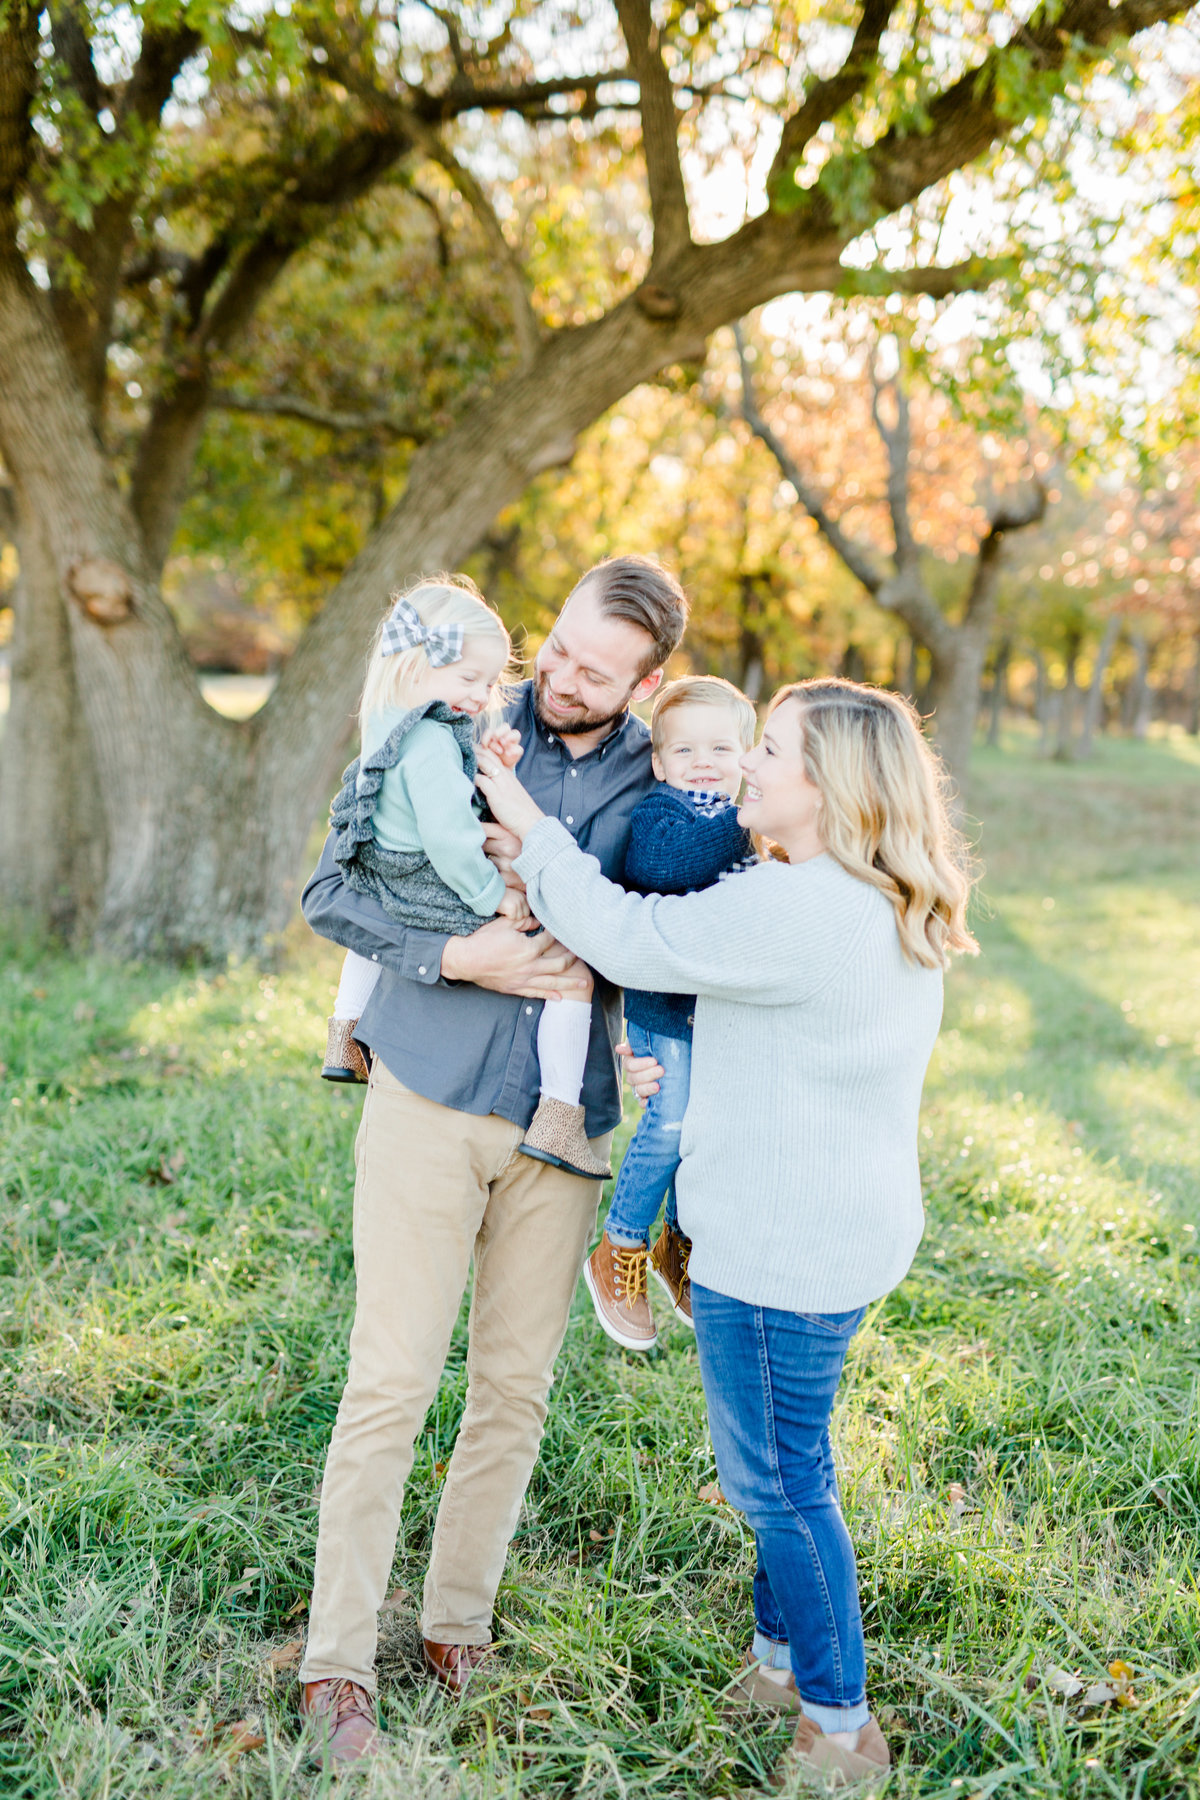 Tulsa-Oklahoma-Family-Photographer-Holly-Felts-Photography-23